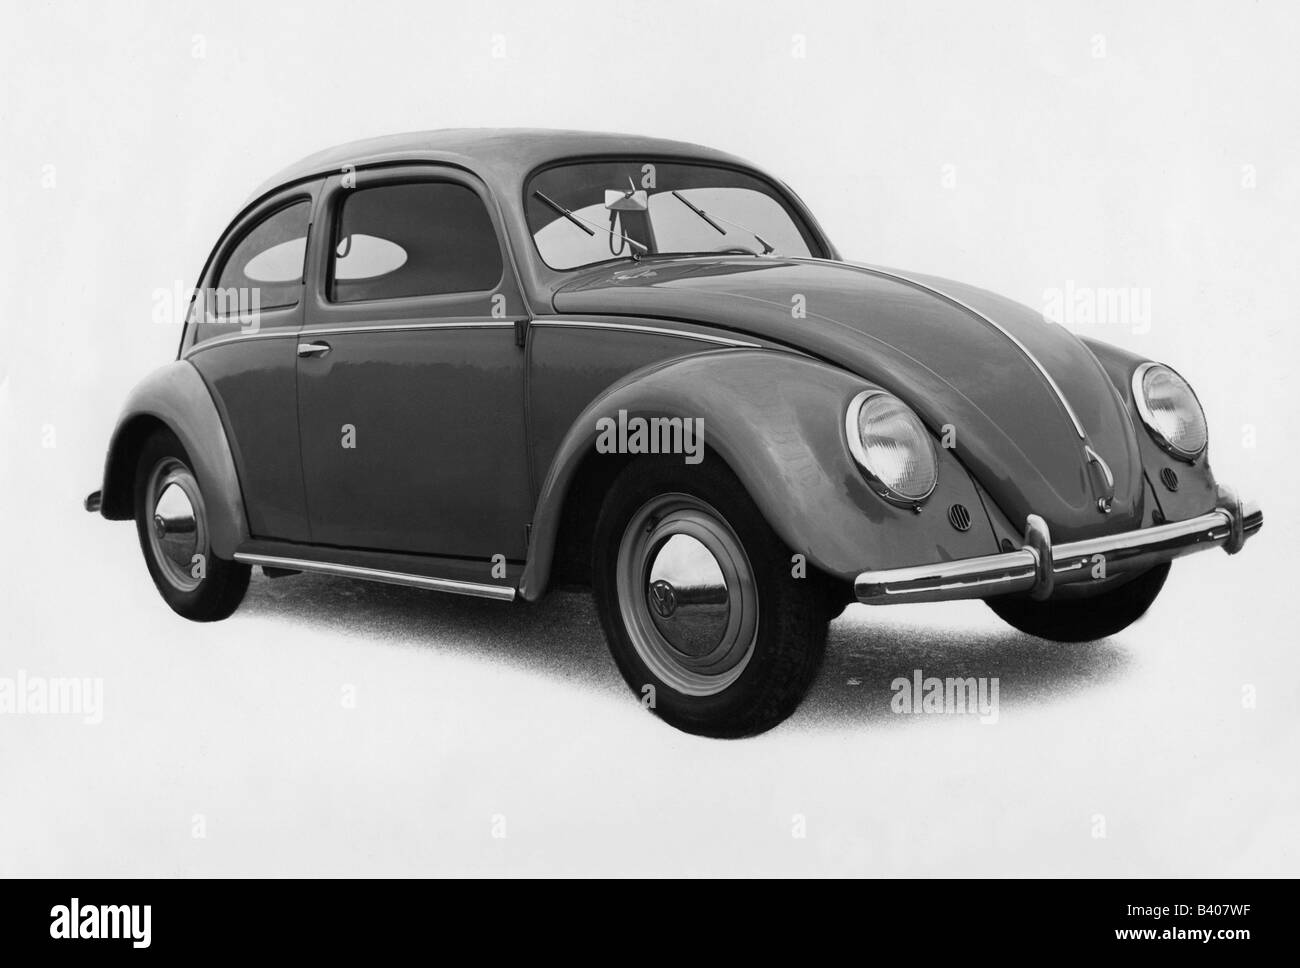 transport / transportation, car, vehicle variants, Volkswagen, VW Beetle, circa 1960, Additional-Rights-Clearances - Stock Image